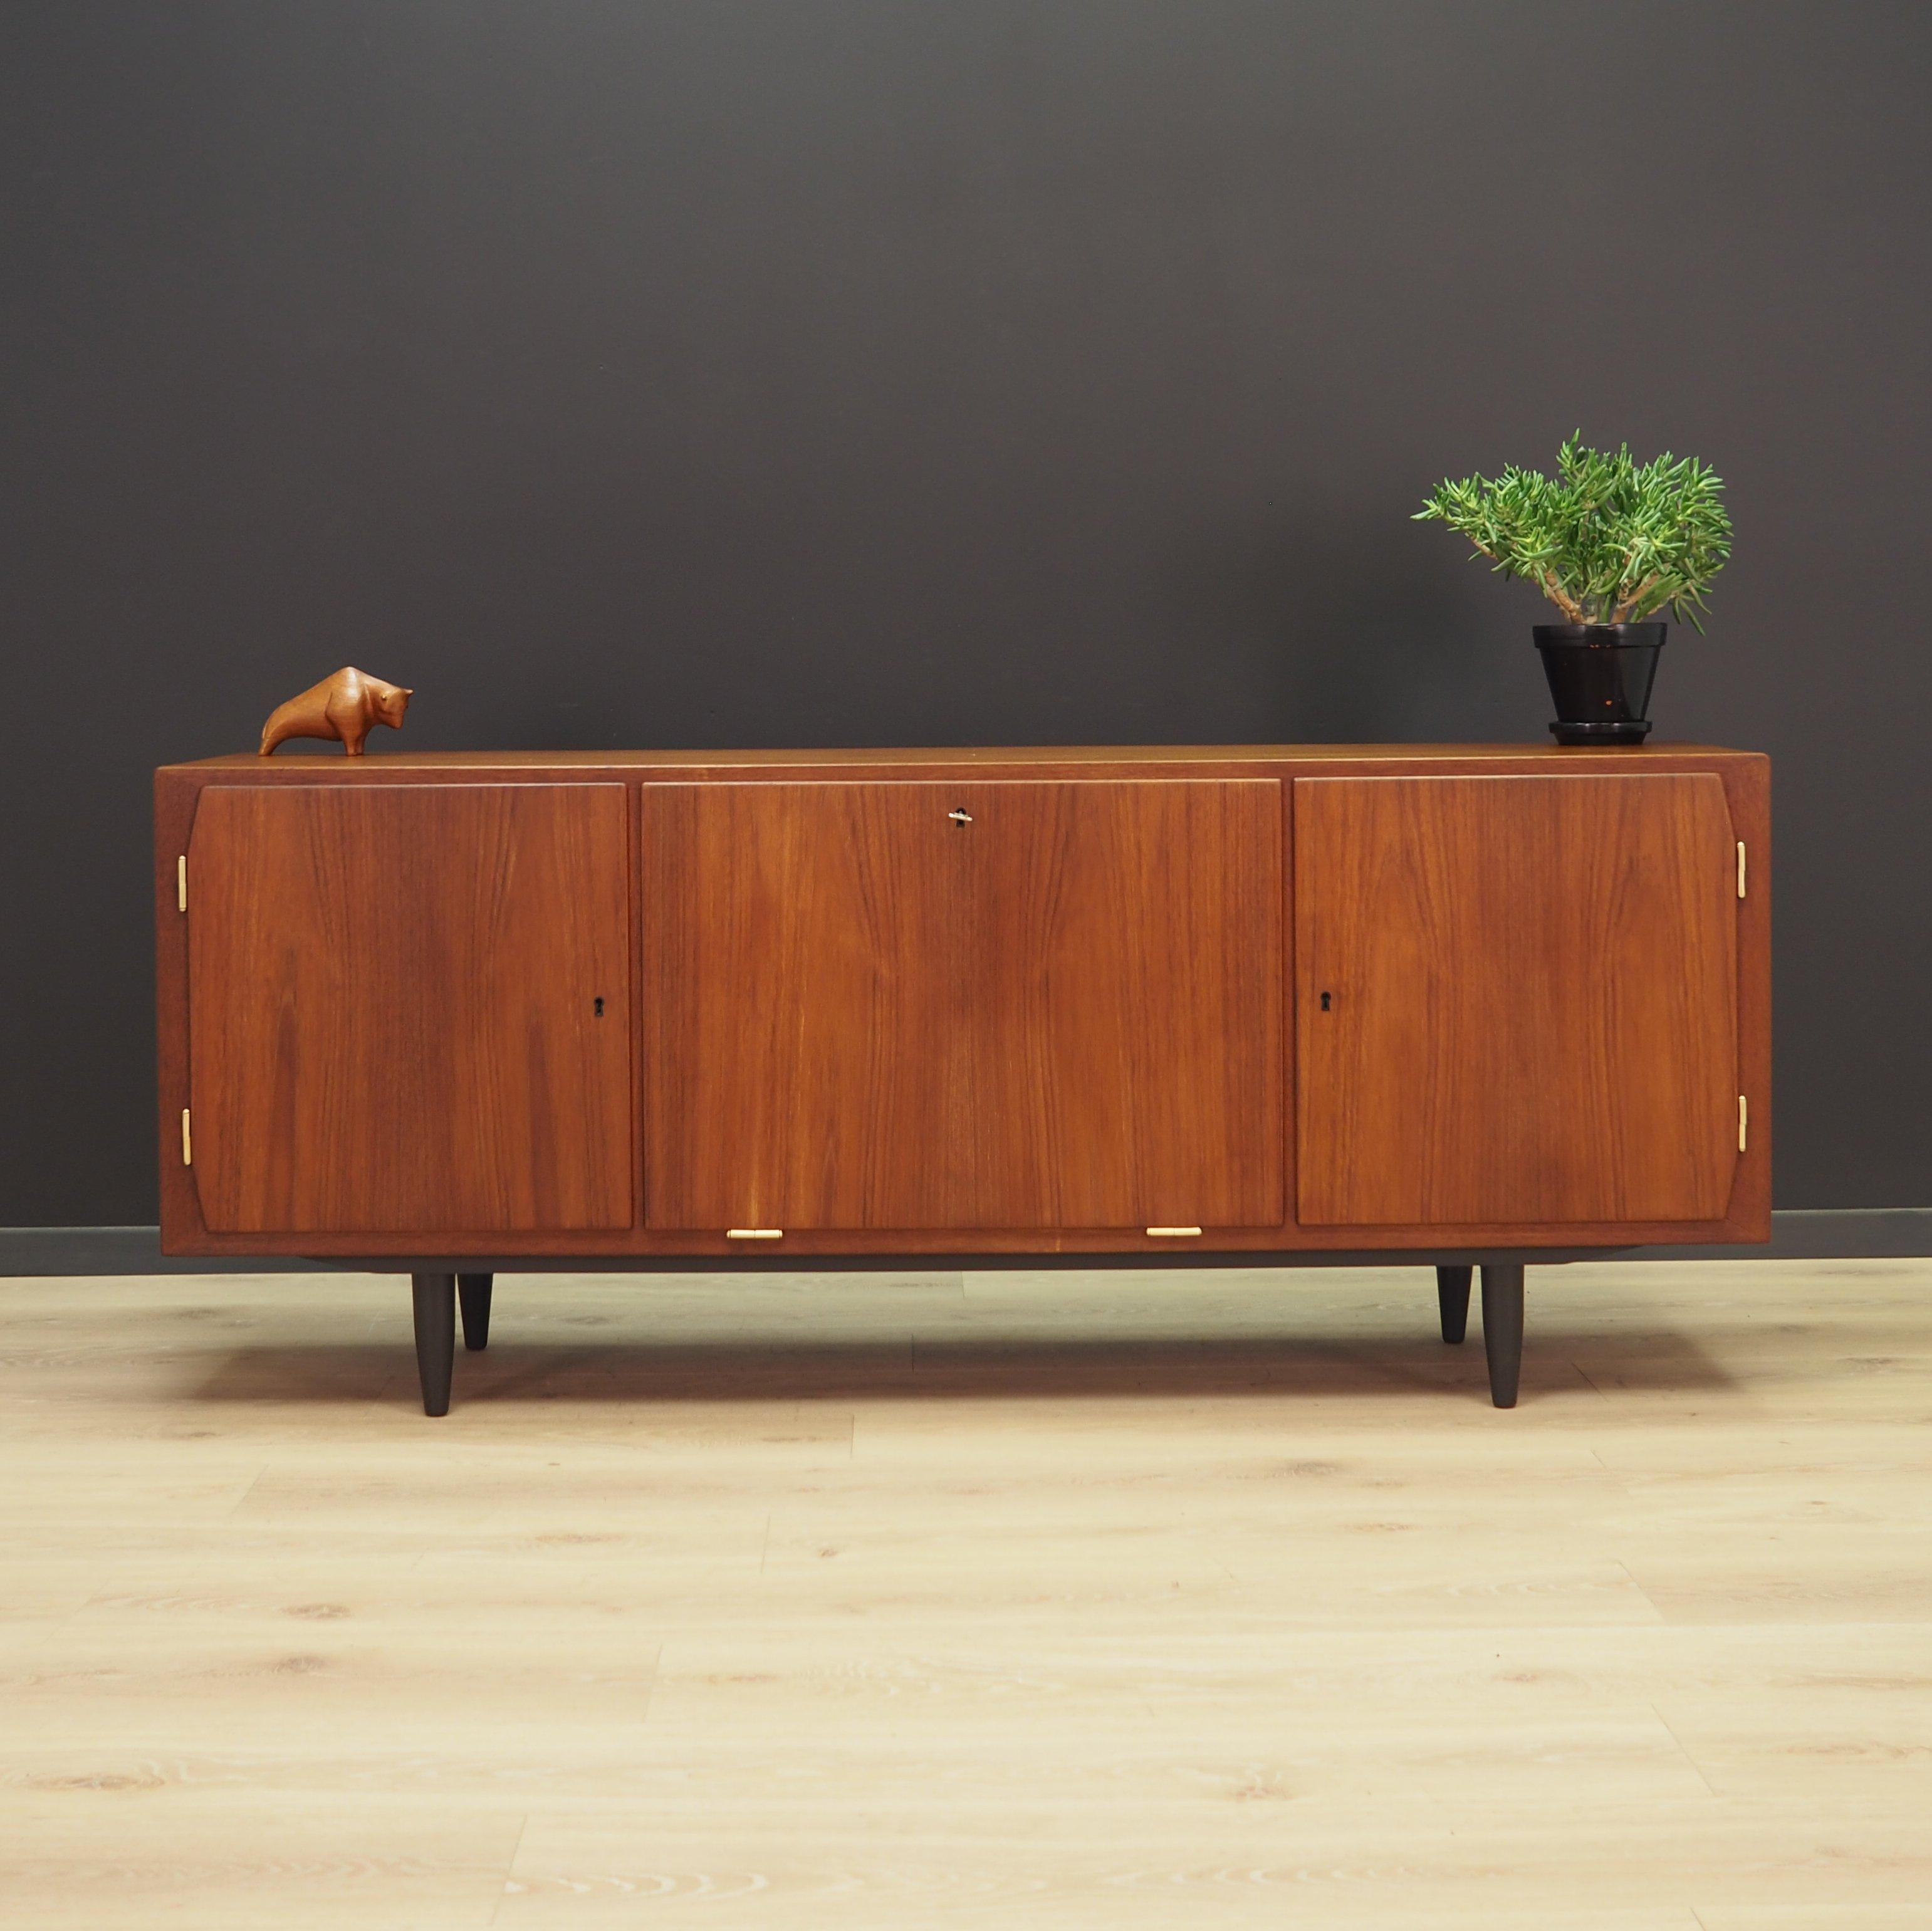 new concept e6440 a447f Vintage sideboard, 1970s